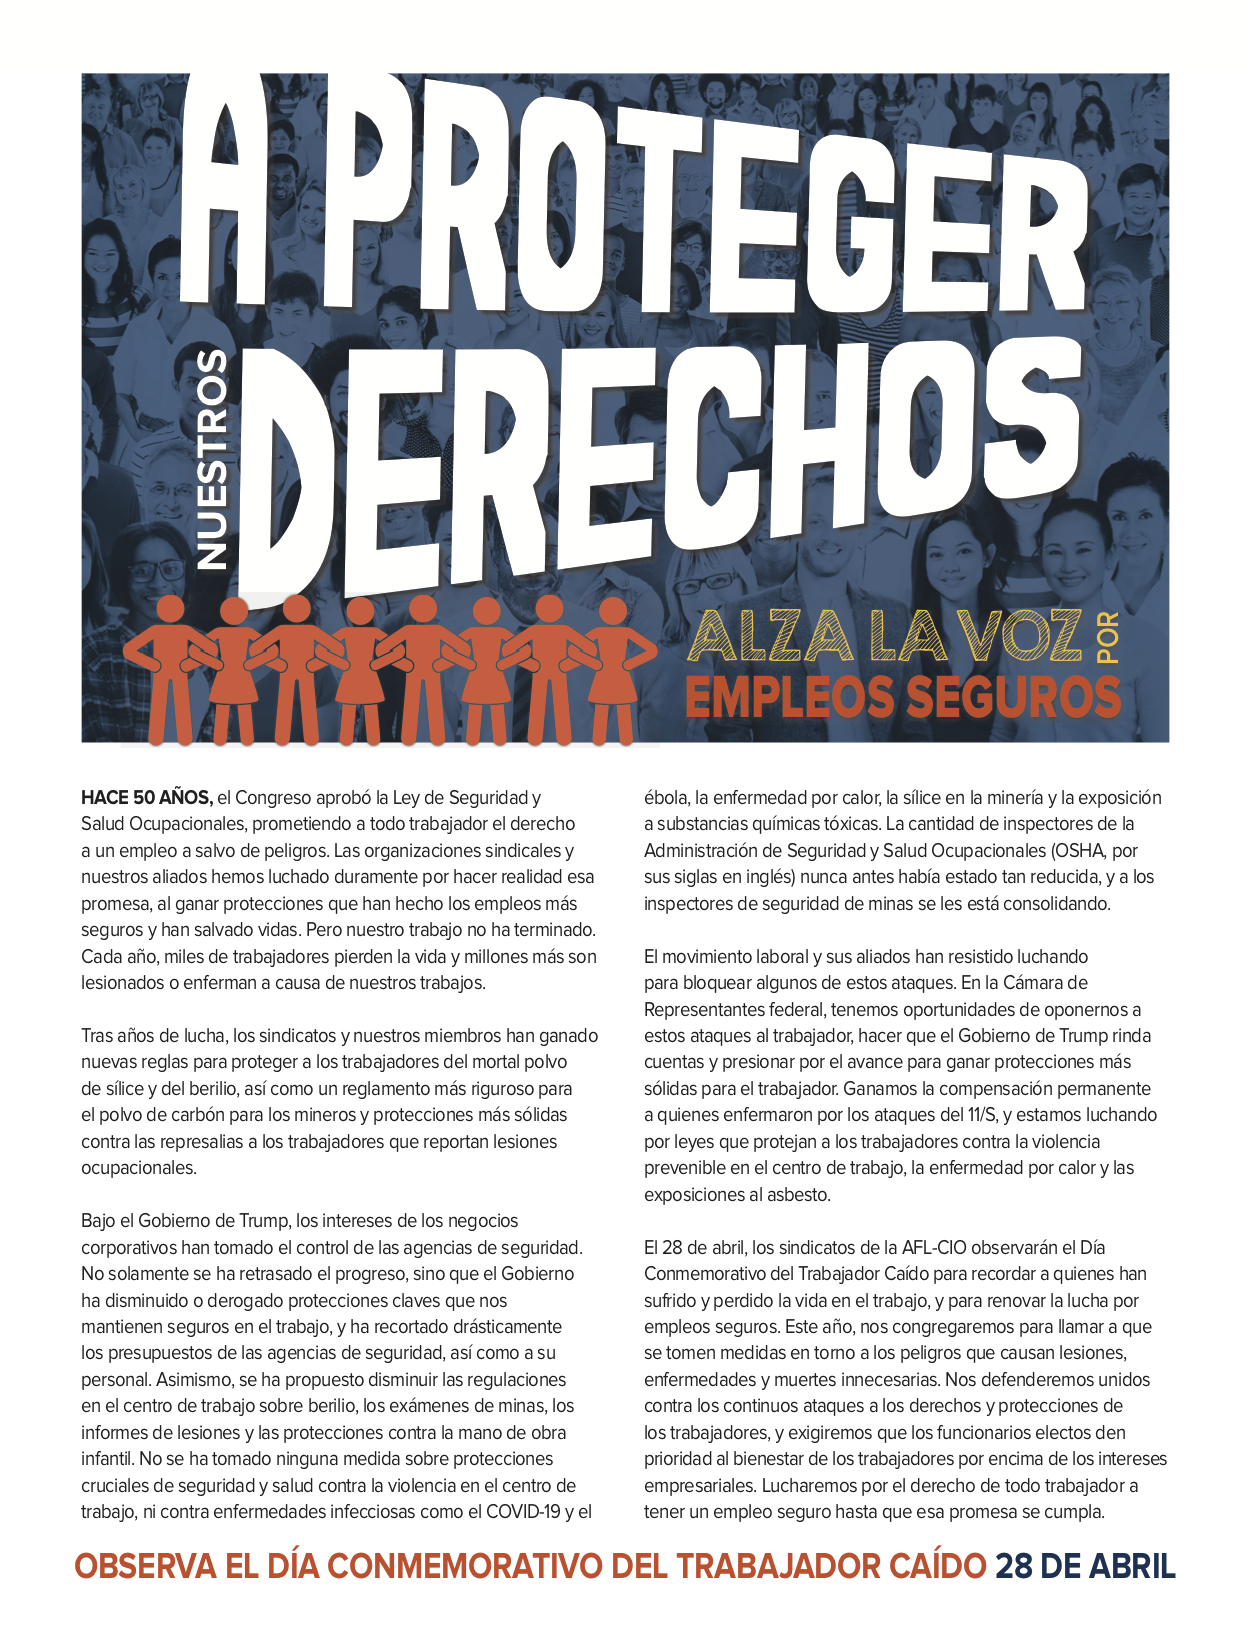 Workers Memorial Day Flyer/Fact Sheet - Spanish